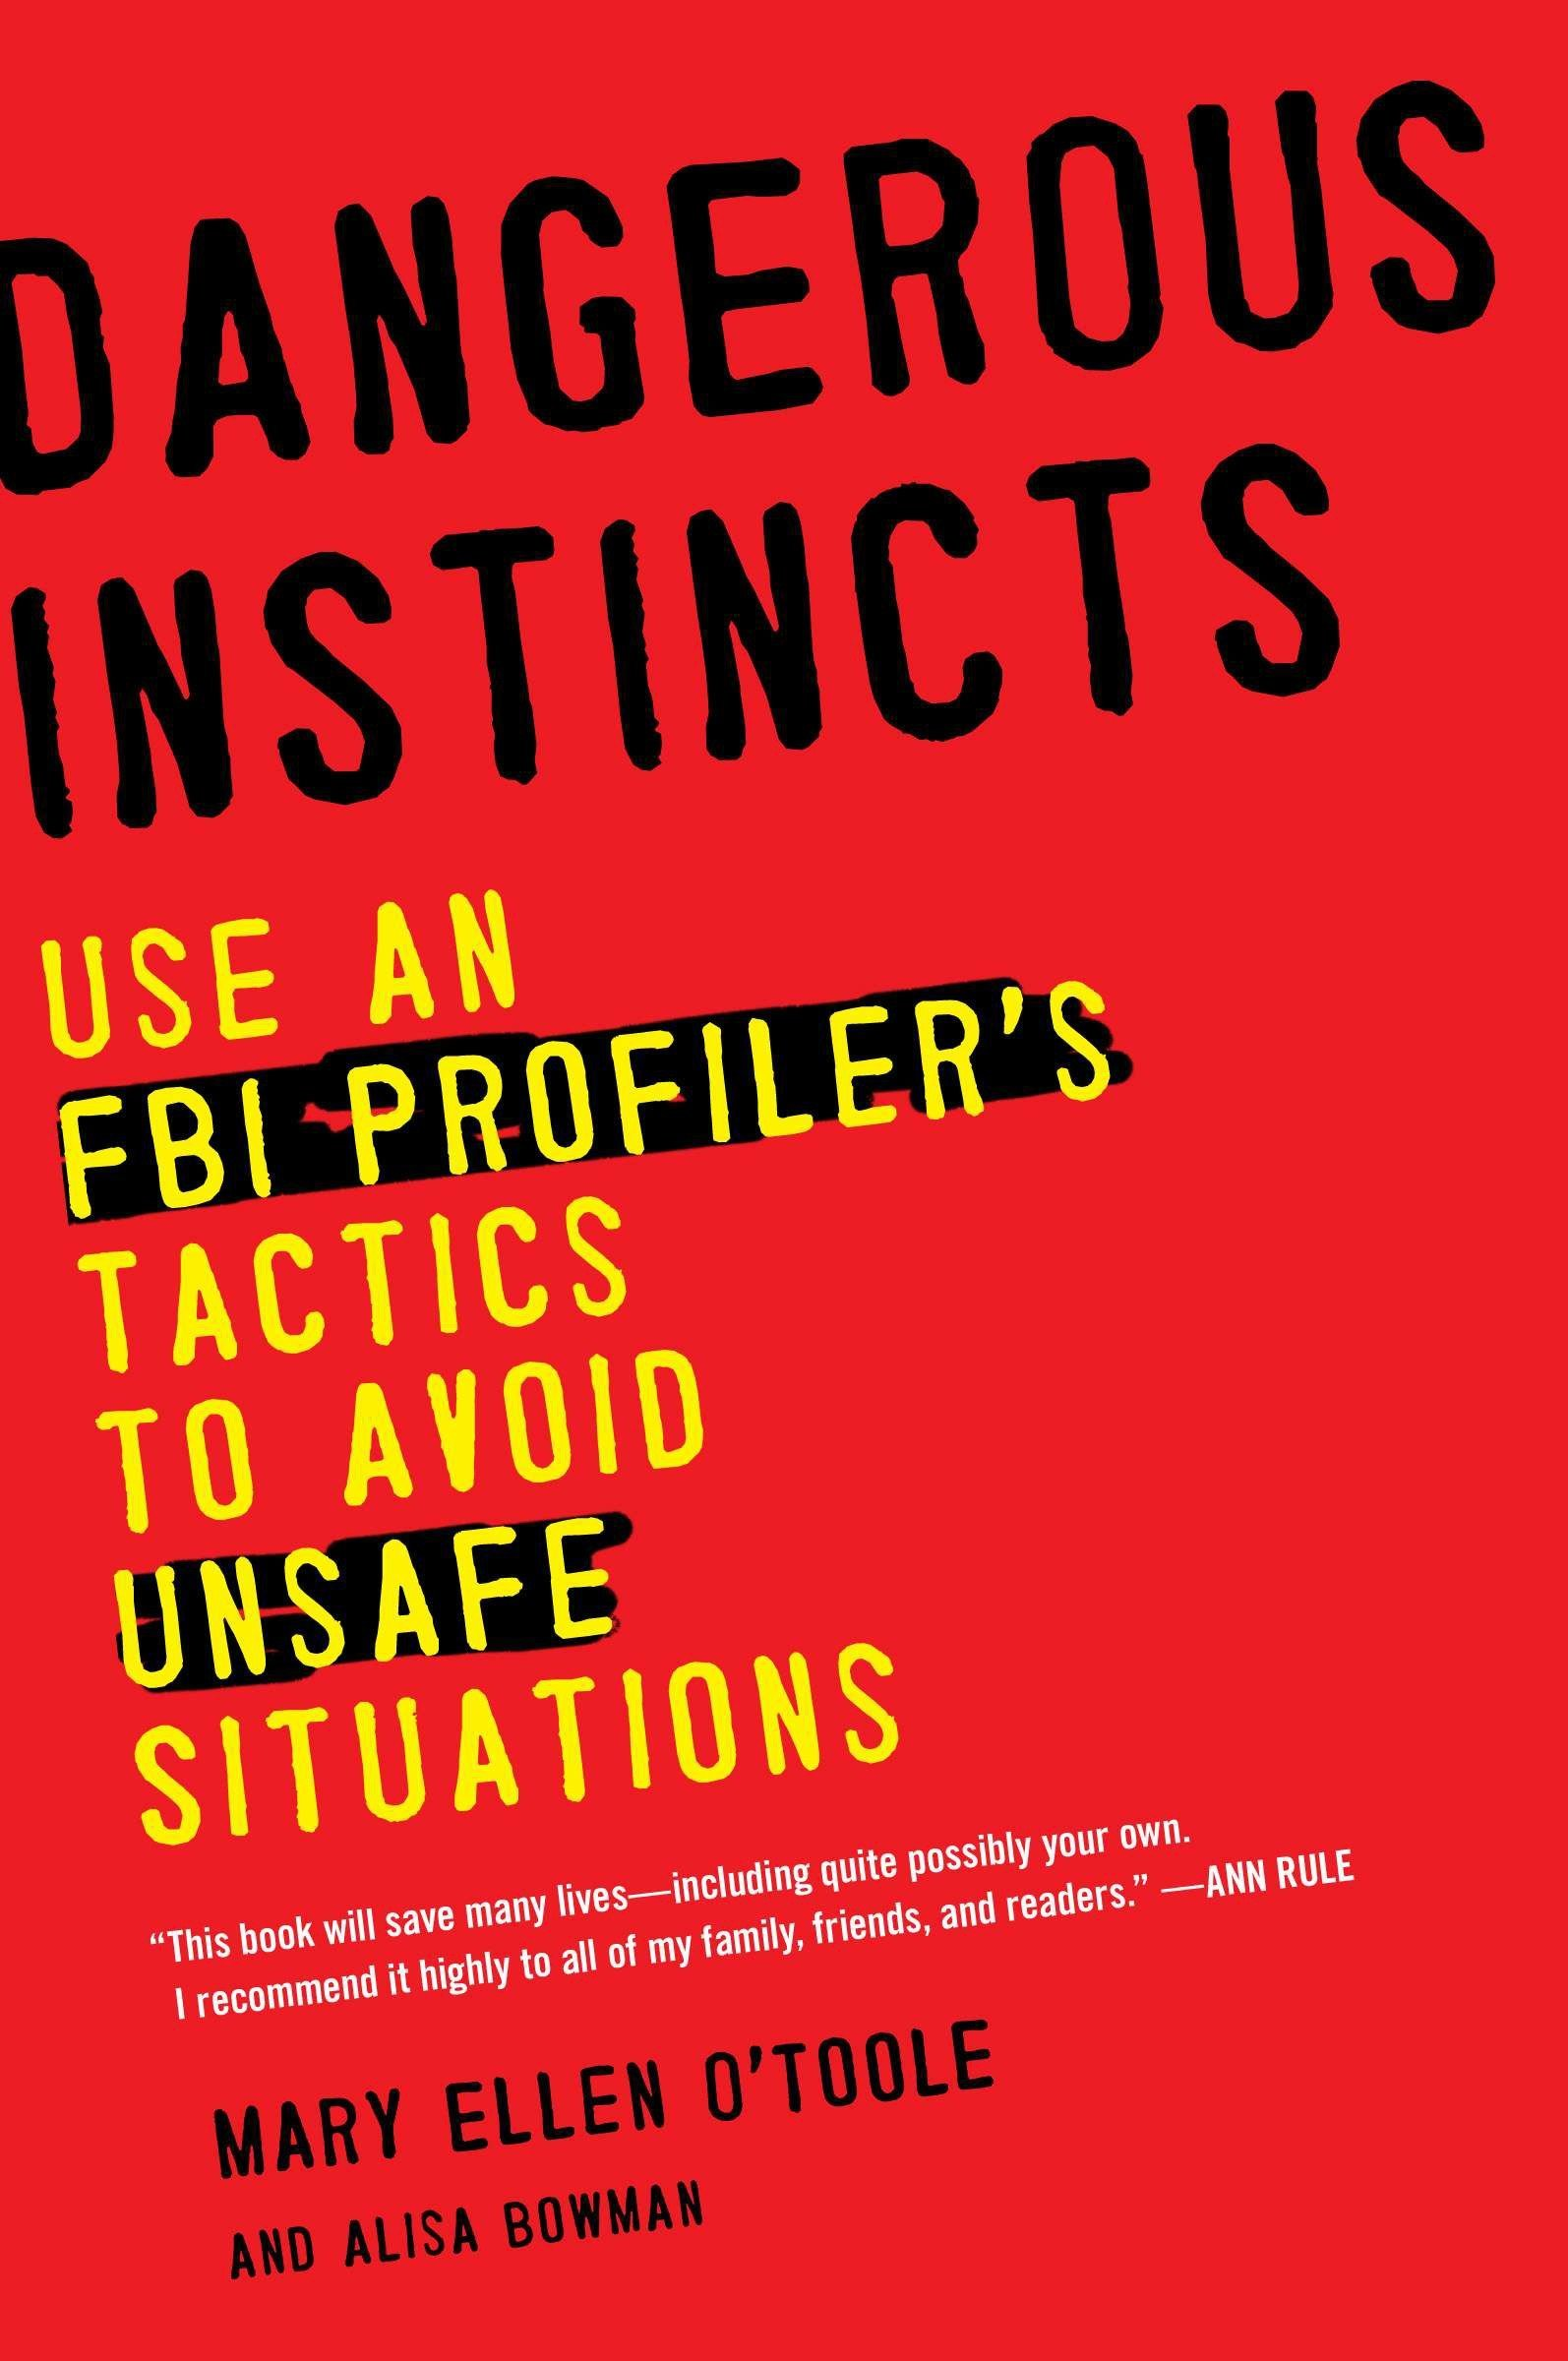 Download Dangerous Instincts: Use an FBI Profiler's Tactics to Avoid Unsafe Situations ebook